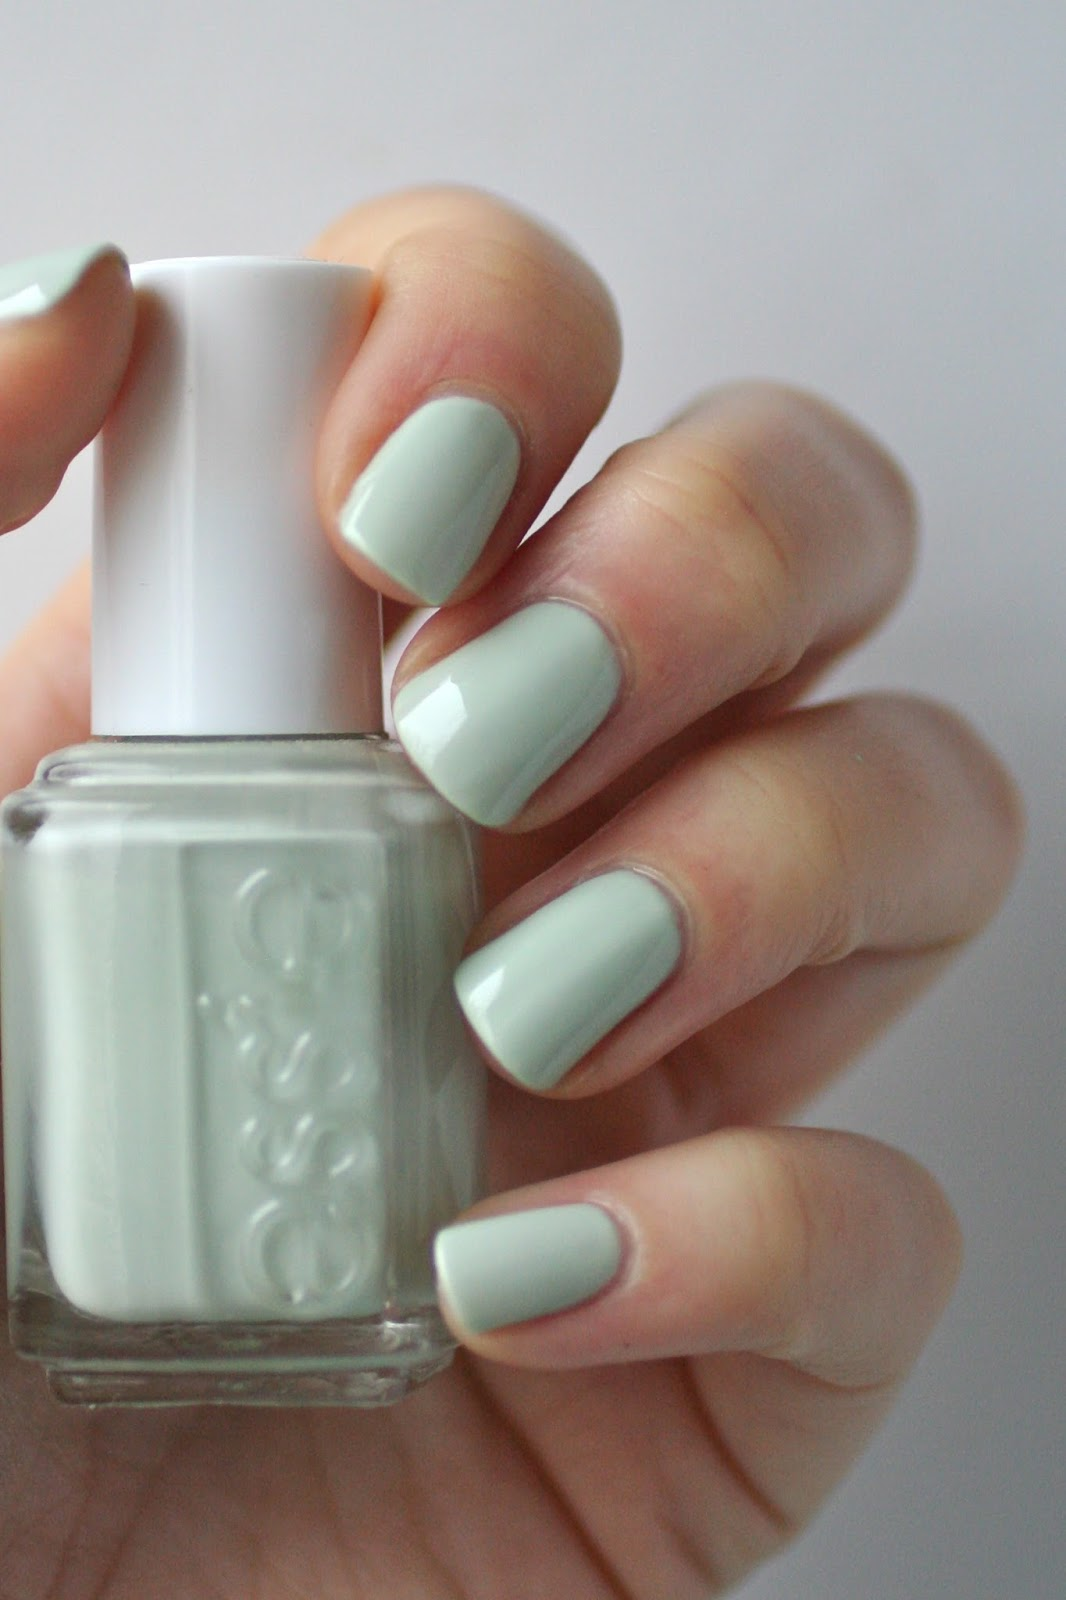 Essie Mint Comparison New Mint Candy Apple Old Mint Candy Apple Blossom Dandy Fashion